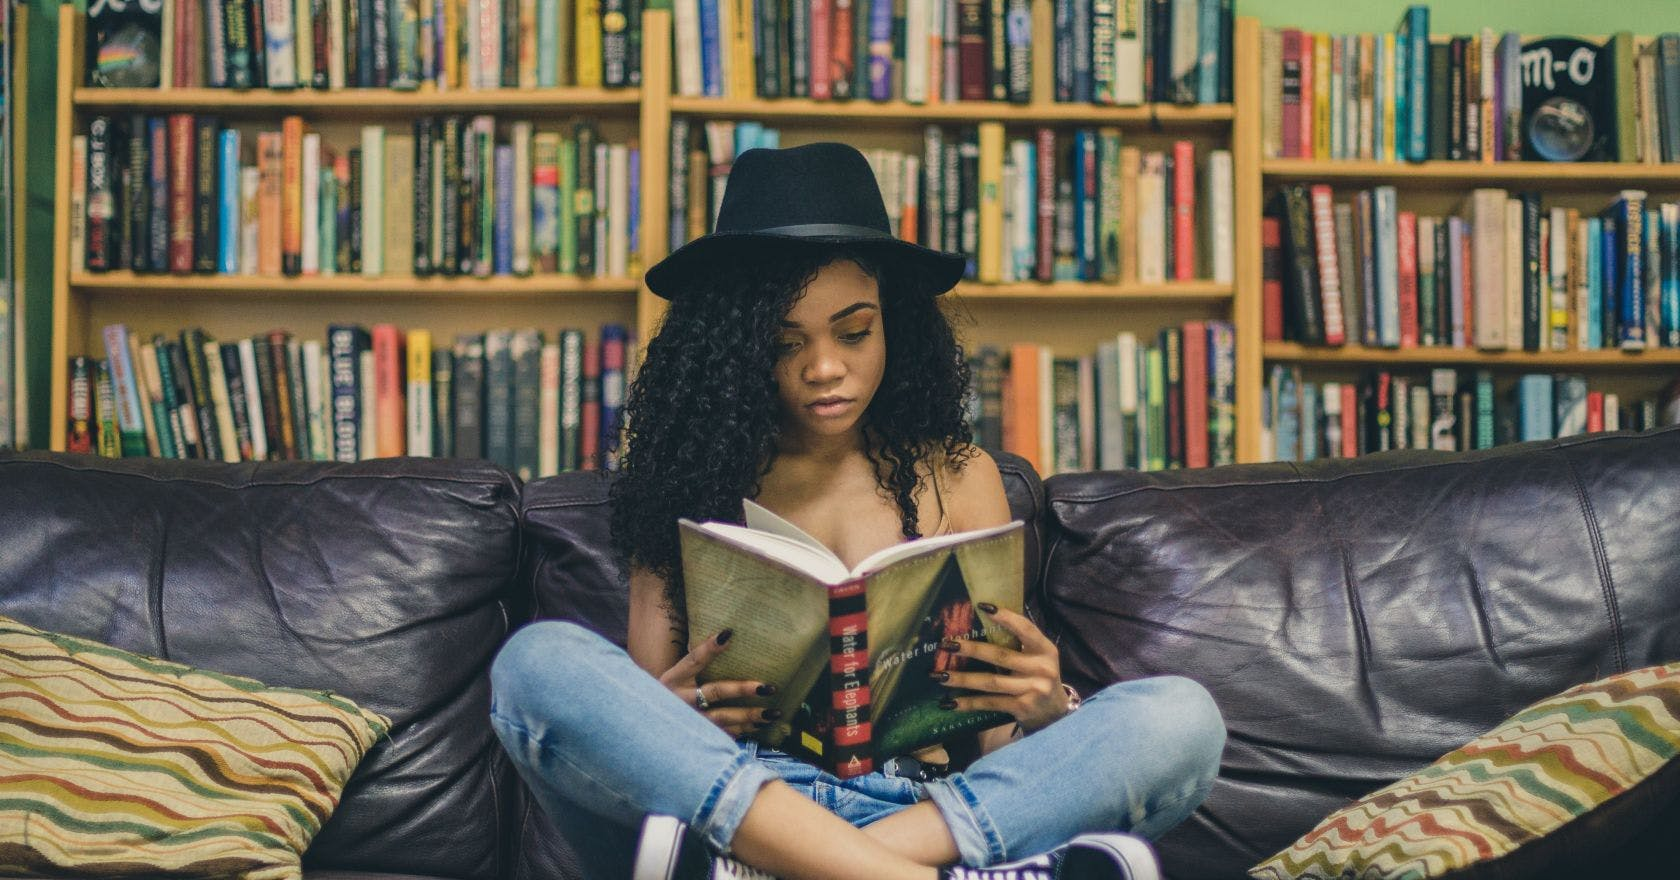 10 brilliant LGBTQ+ books to add to your reading list